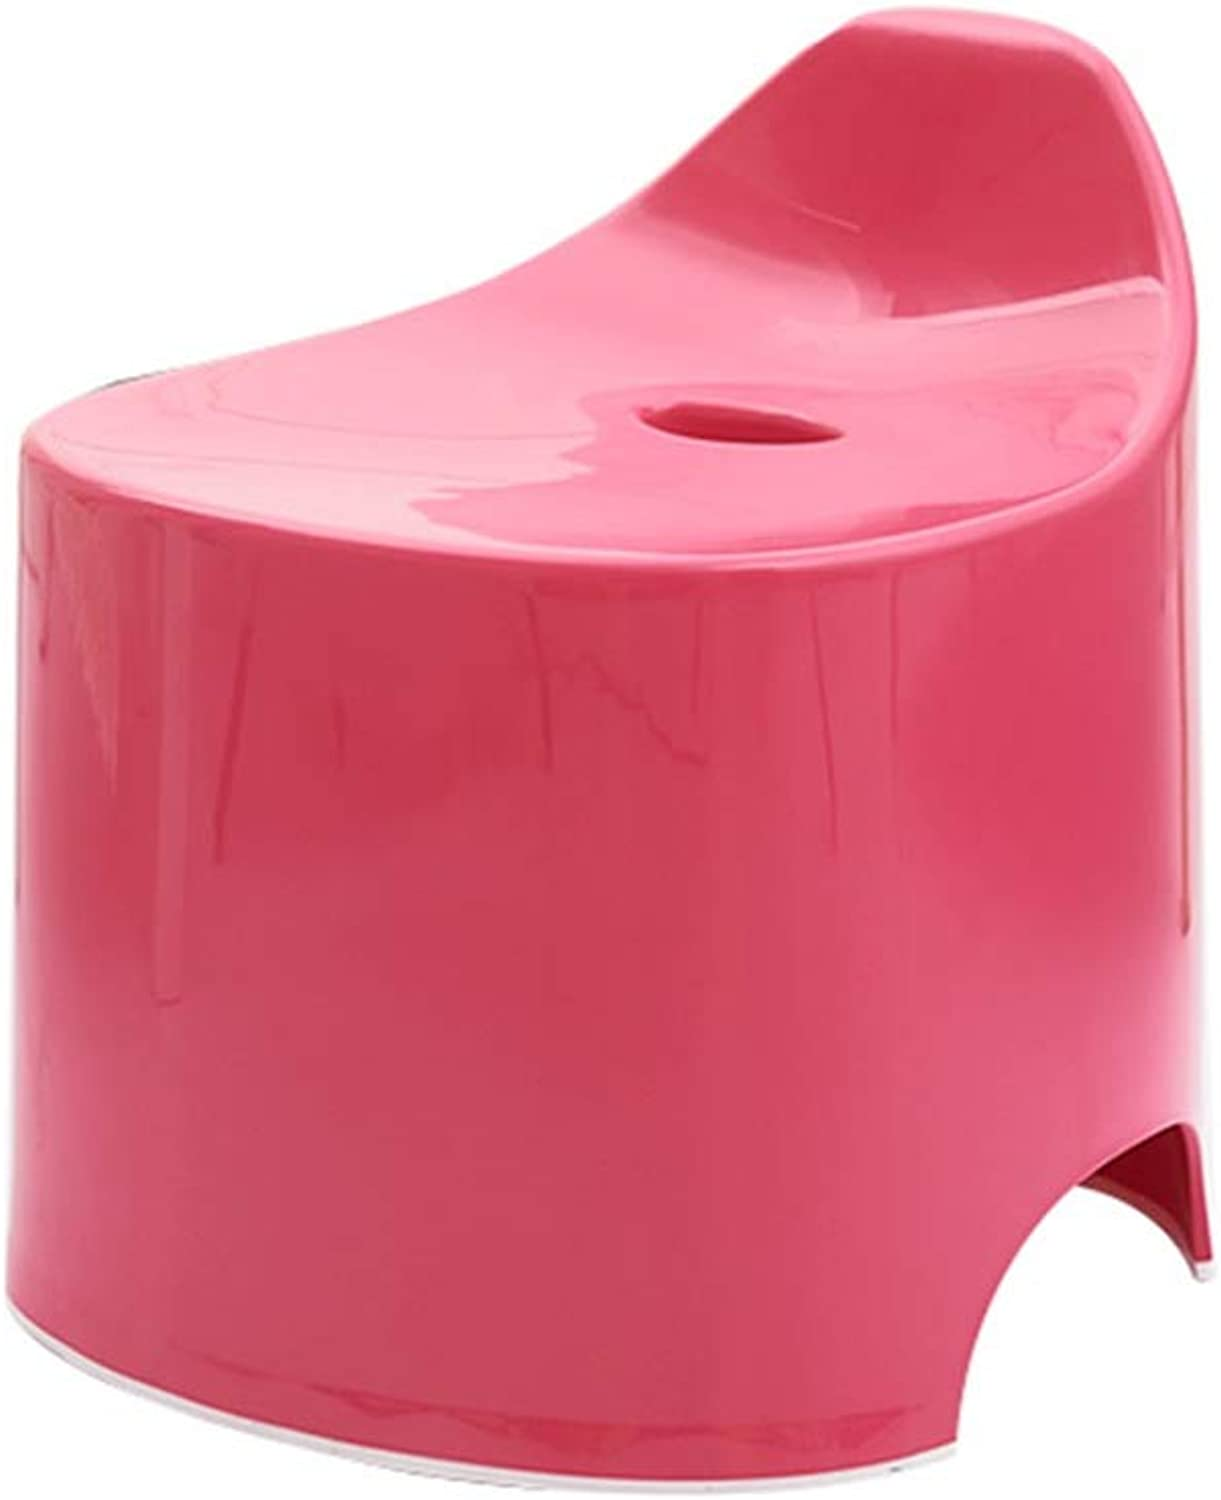 ZHAOYONGLI Footstools,Otools PP Material Candy color Bathroom Anti-Slip Stool Home Change shoes Bench (color   Crimson, Size   35  32  36cm)